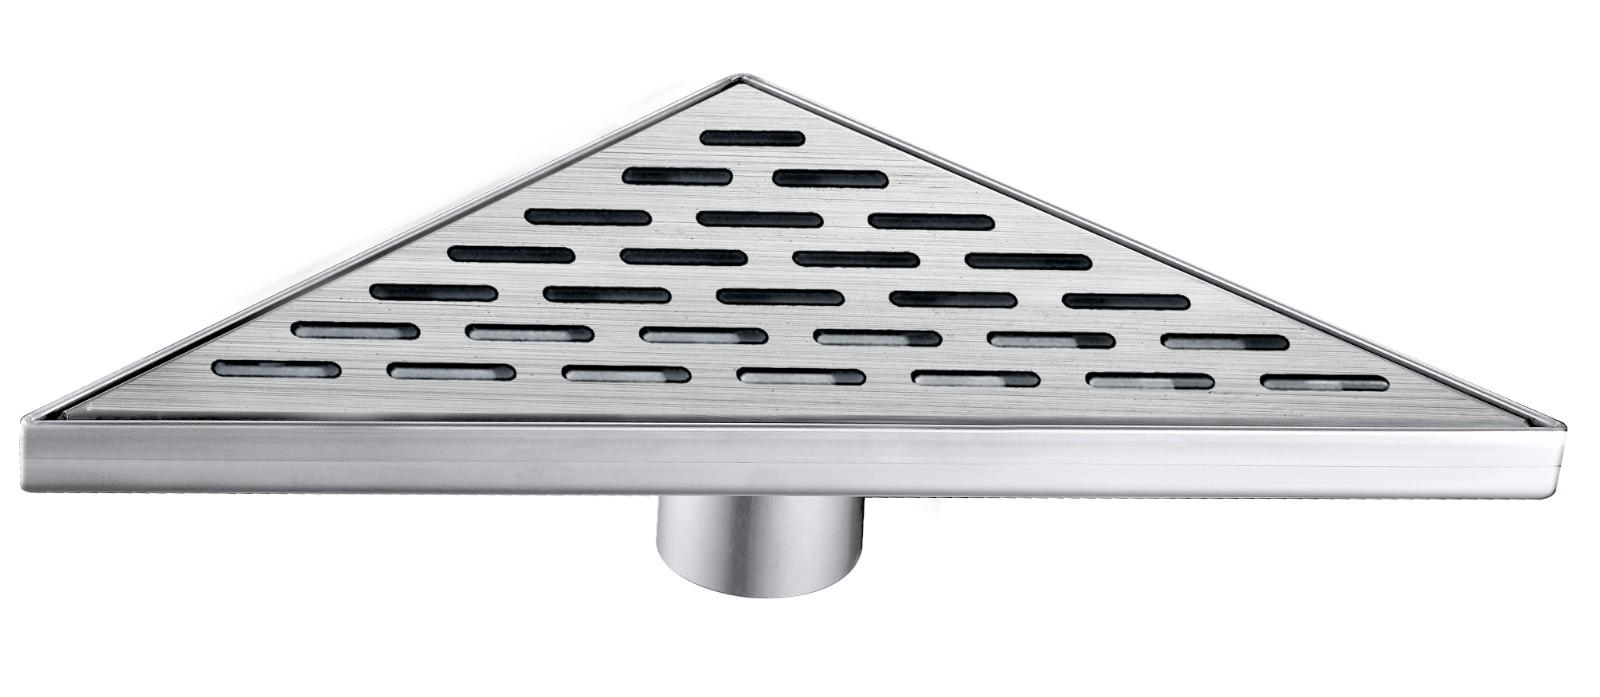 foldable bathroom drain cover supplier for disabled people-1